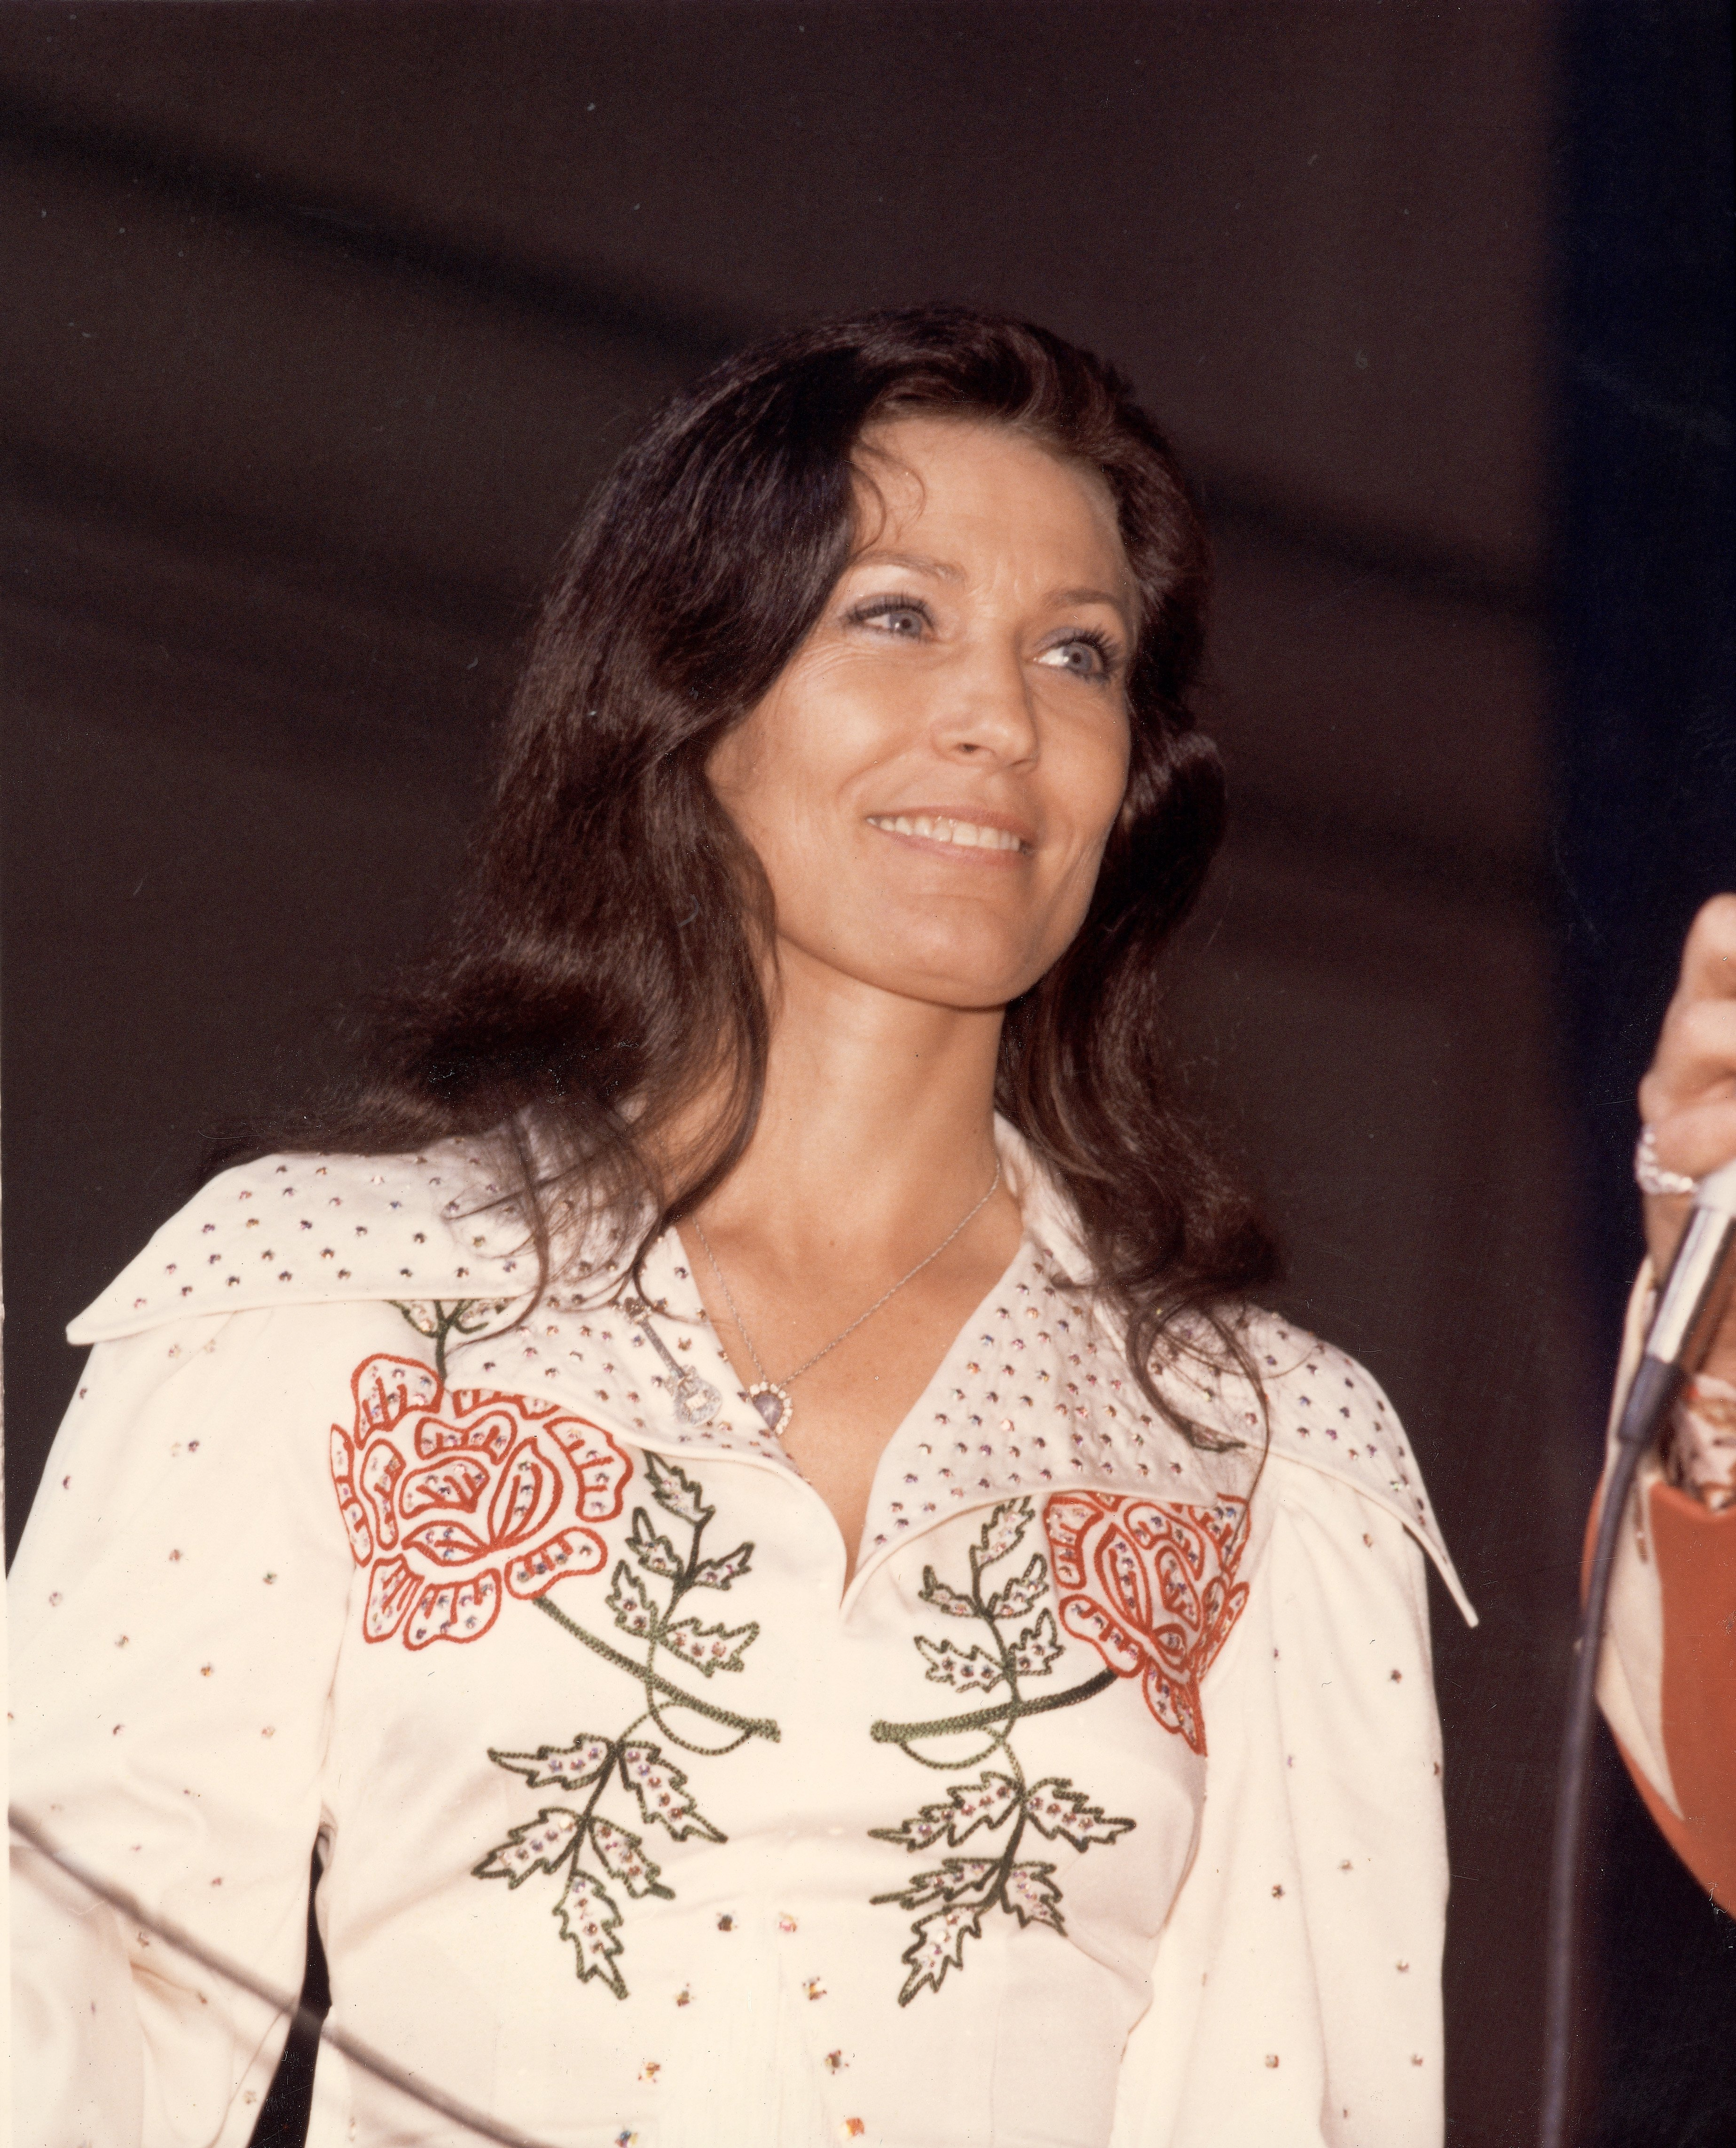 Country music singer Loretta Lynn holding a microphone onstage in the late 1970s | Photo: Getty Images